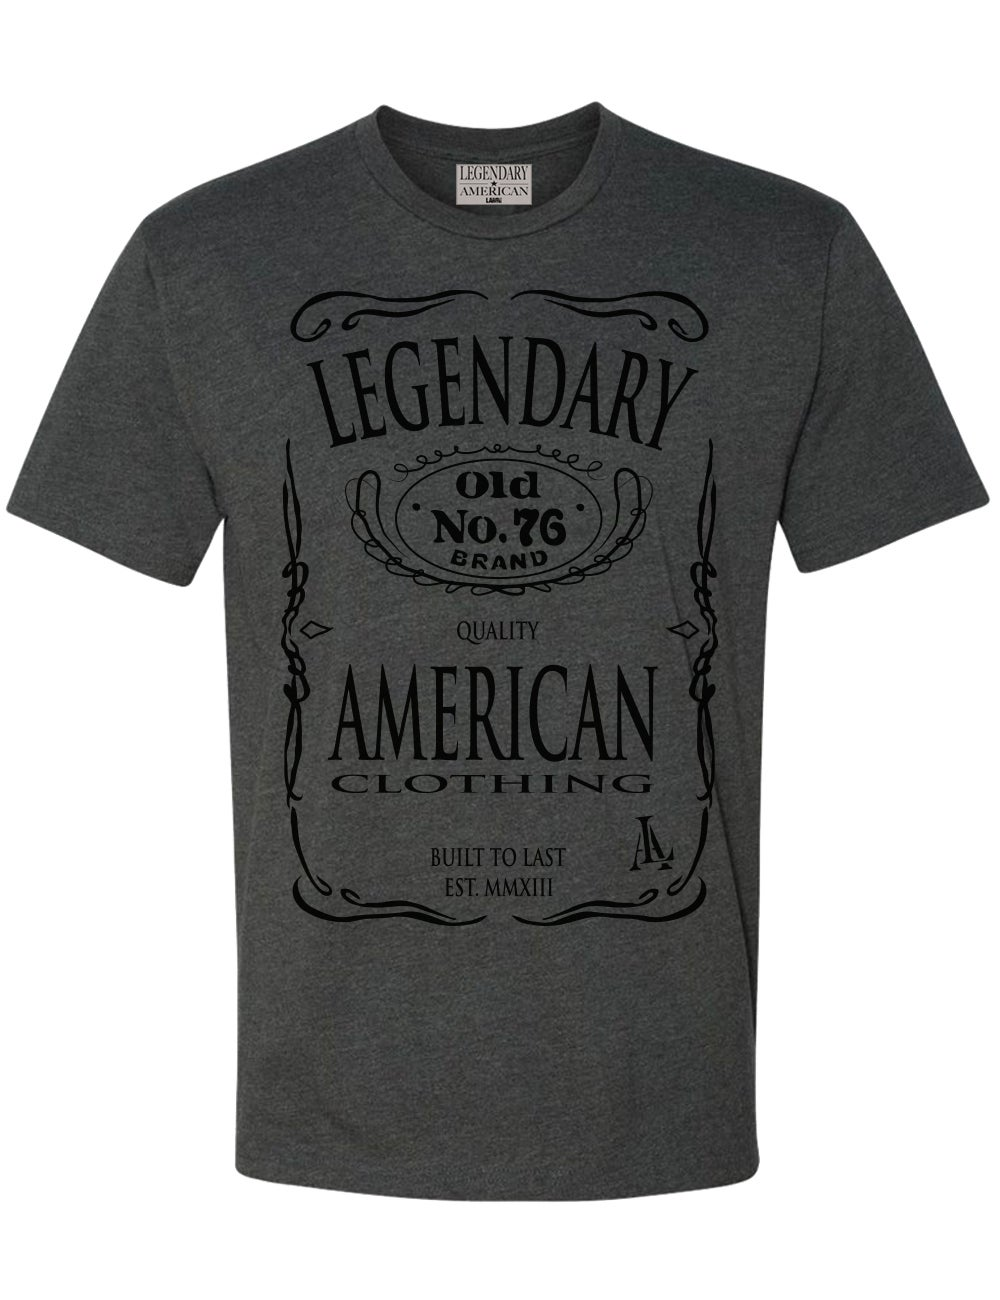 Image of Legendary American Old No. 76 tee in charcoal heather